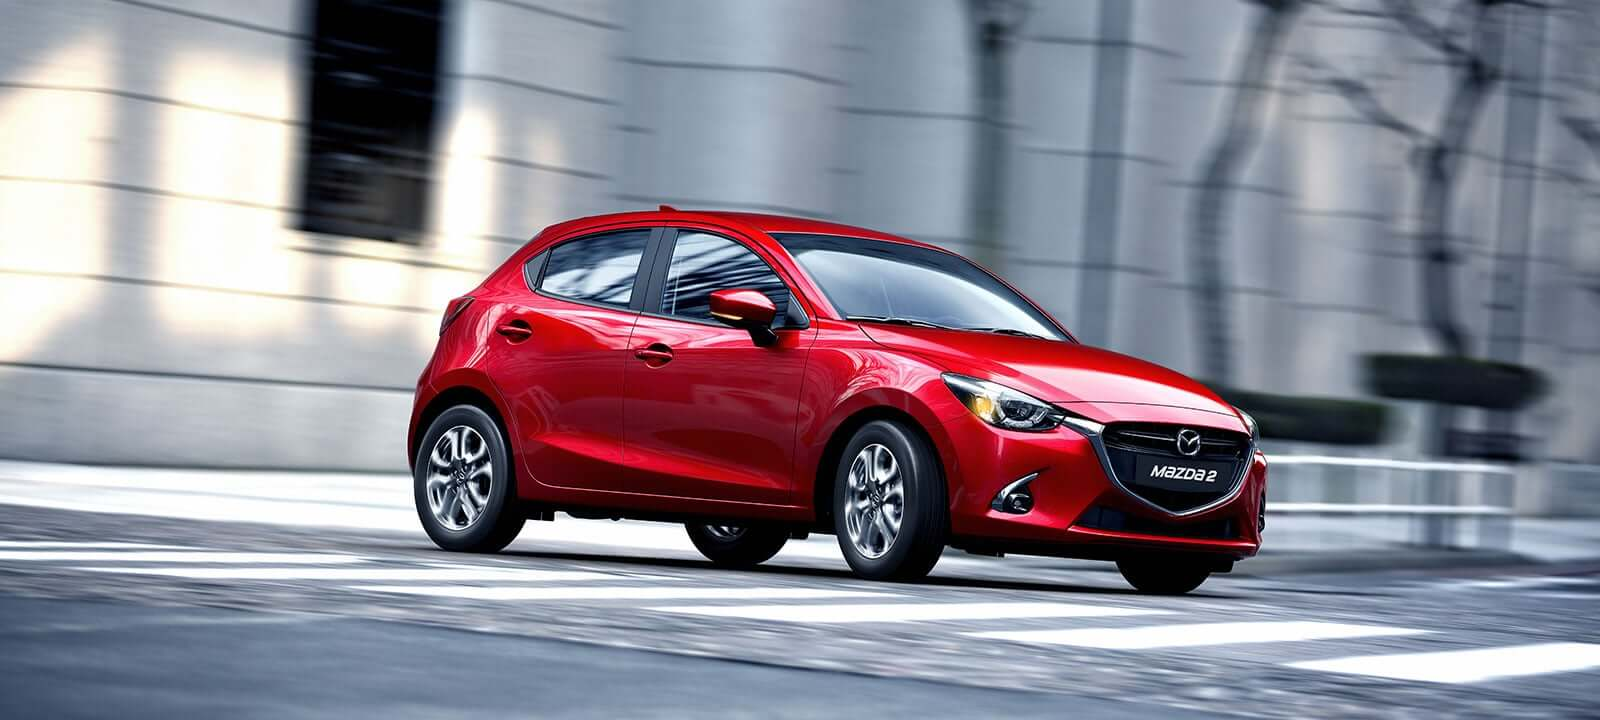 mazda new mazda2 sport 1 5l v 6mt mazda chile mazda. Black Bedroom Furniture Sets. Home Design Ideas